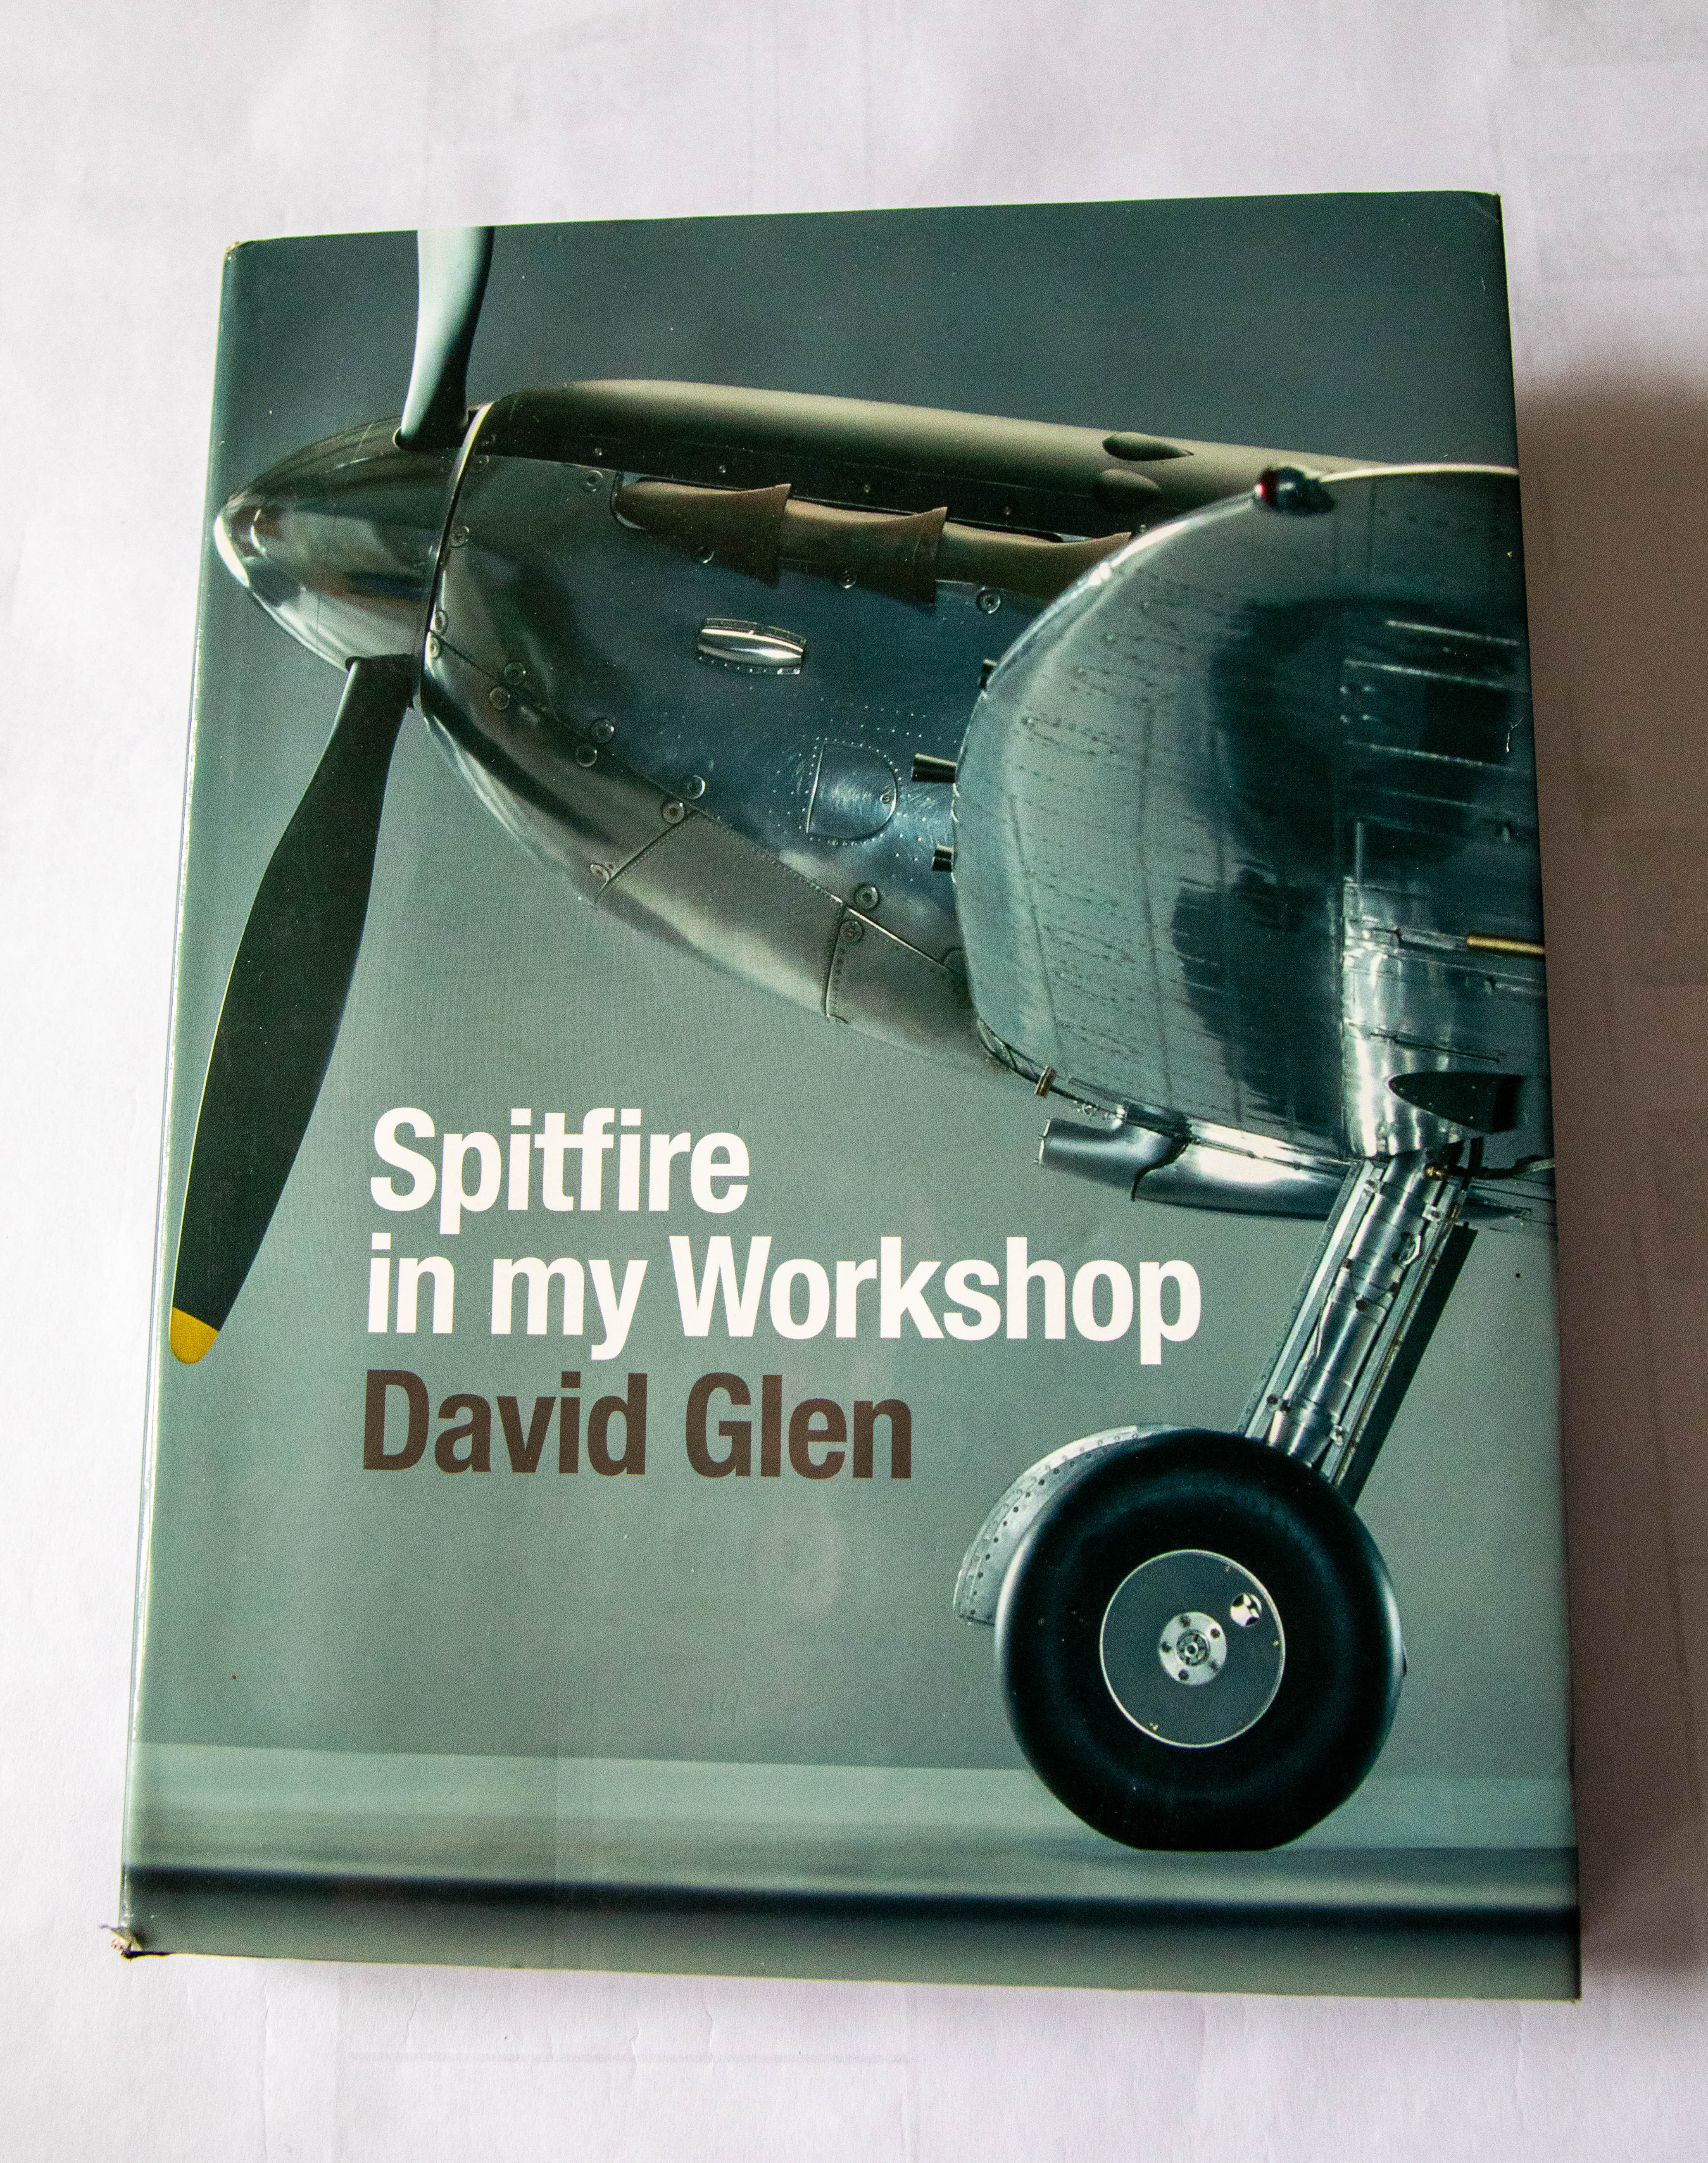 Spitfire in my Workshop